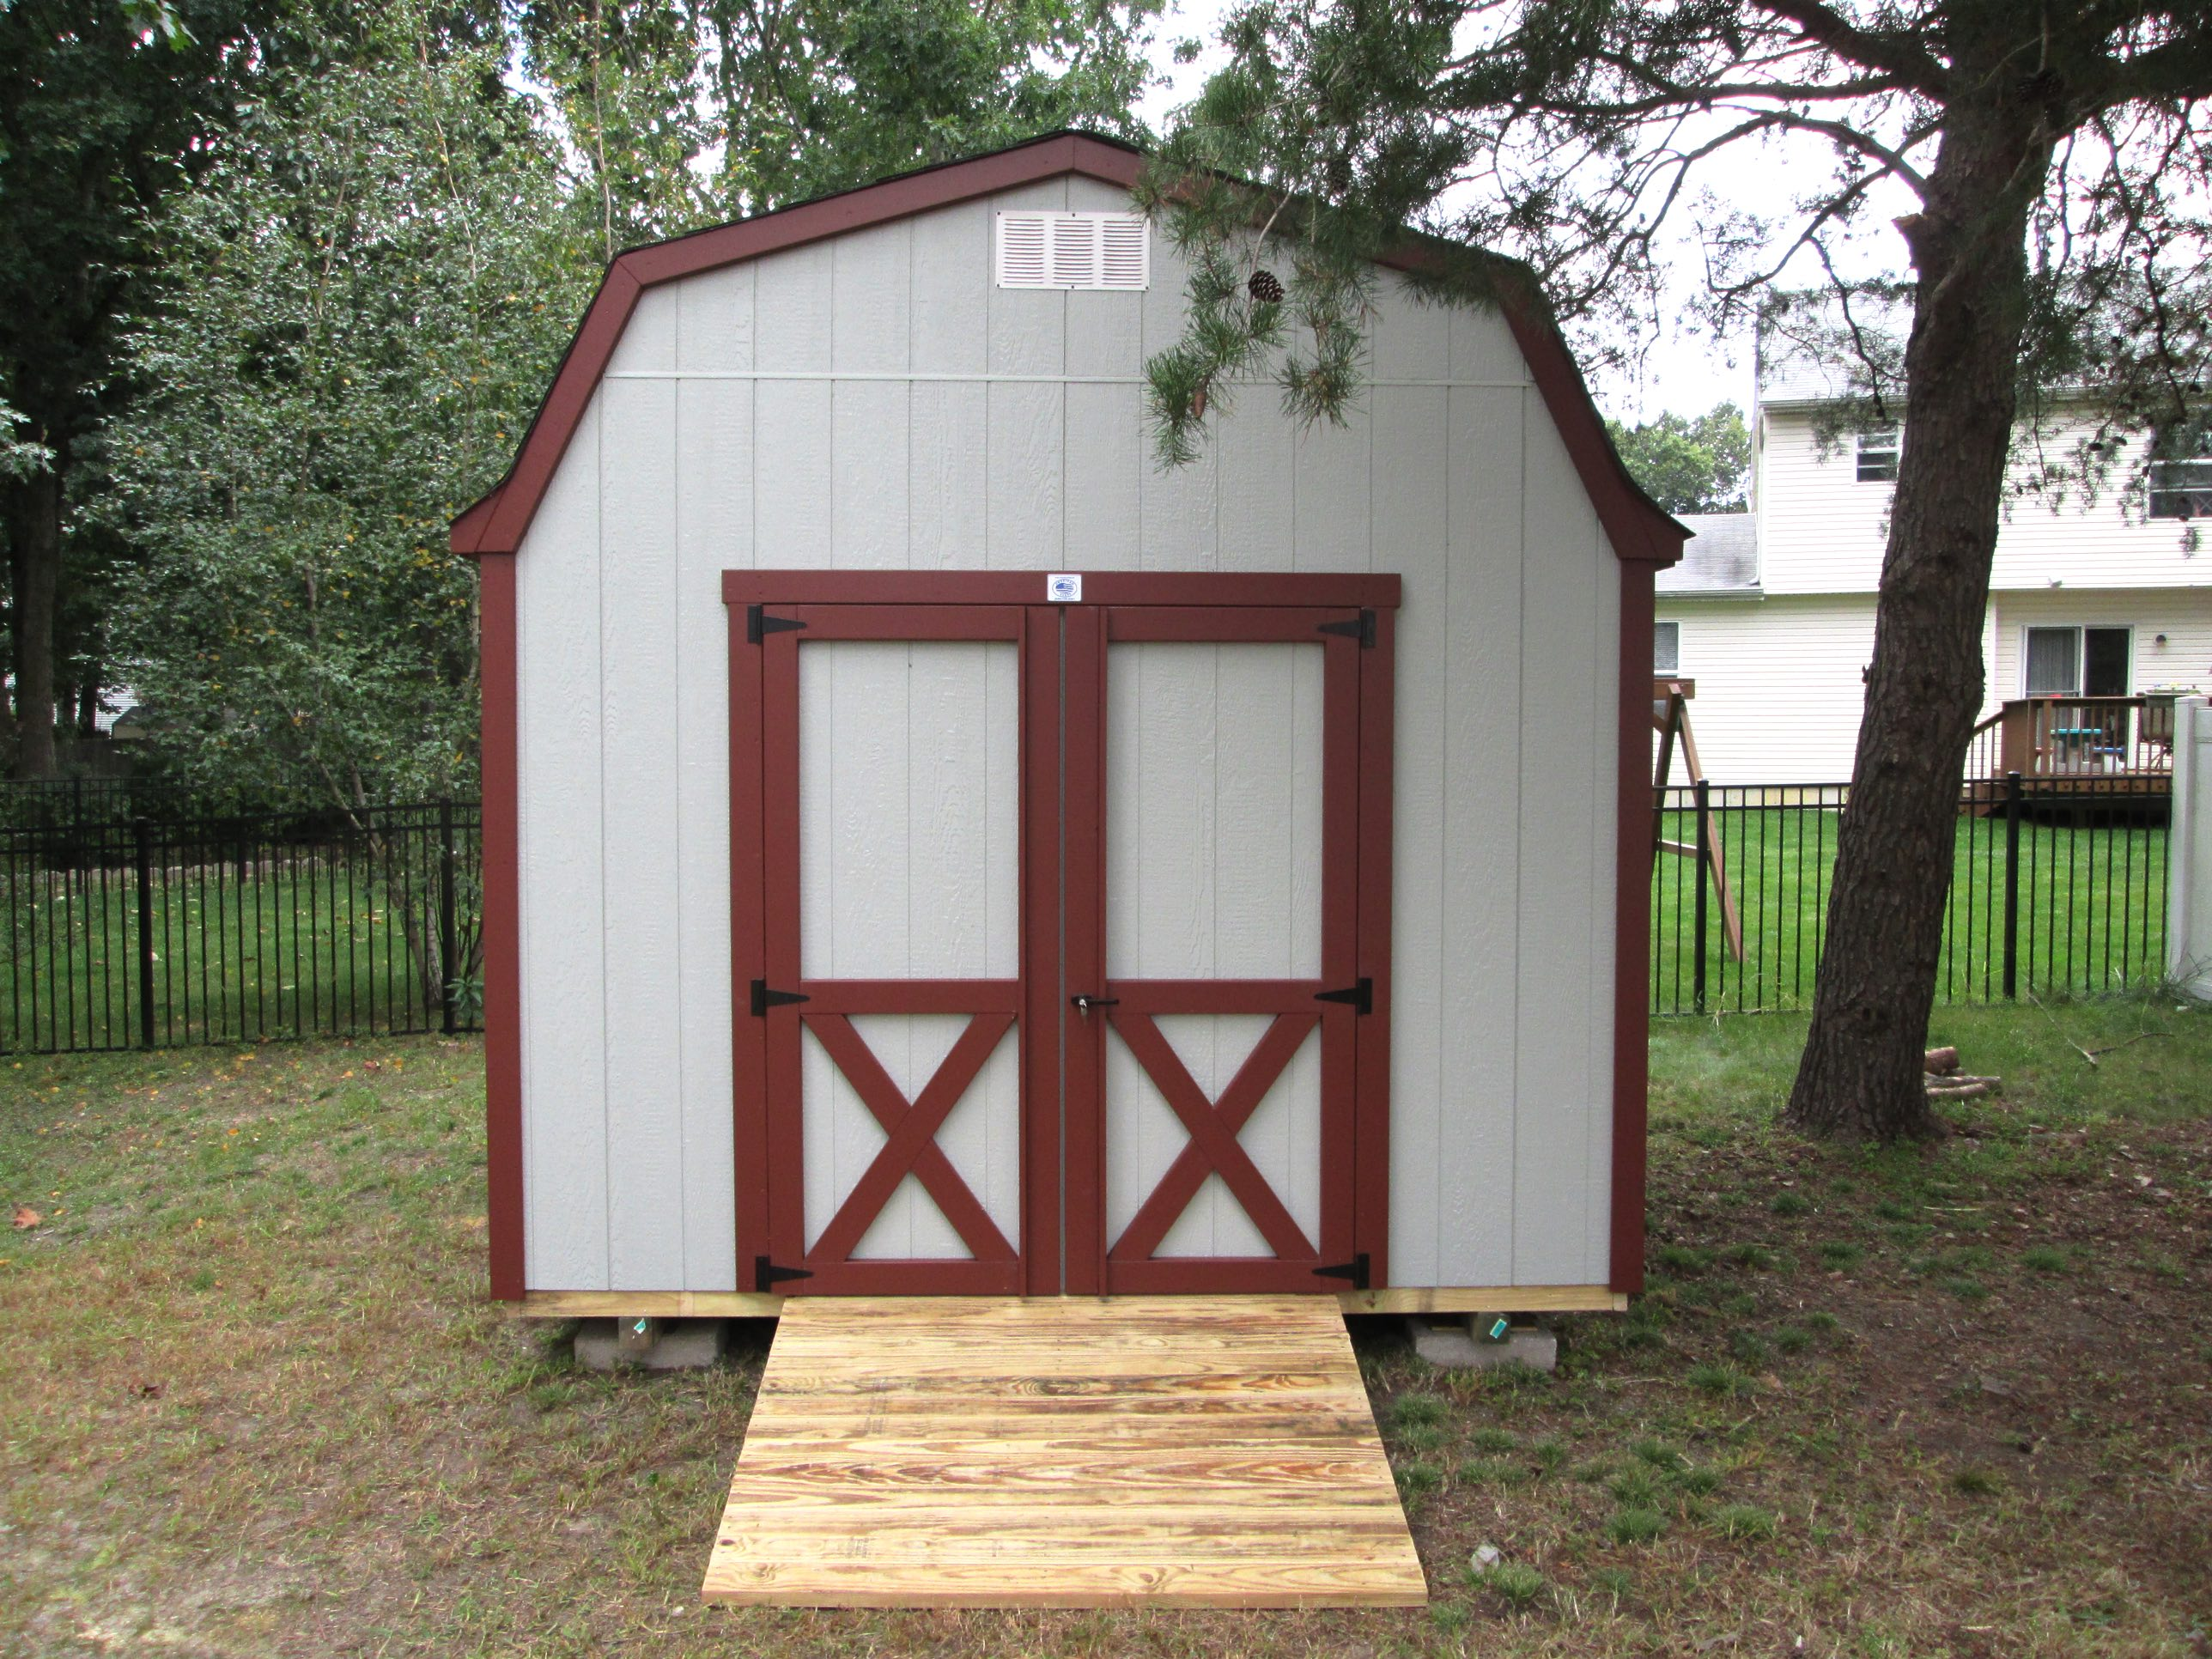 premier barns storage of backyard the best amish red nj for sheds outdoor and built cabinets